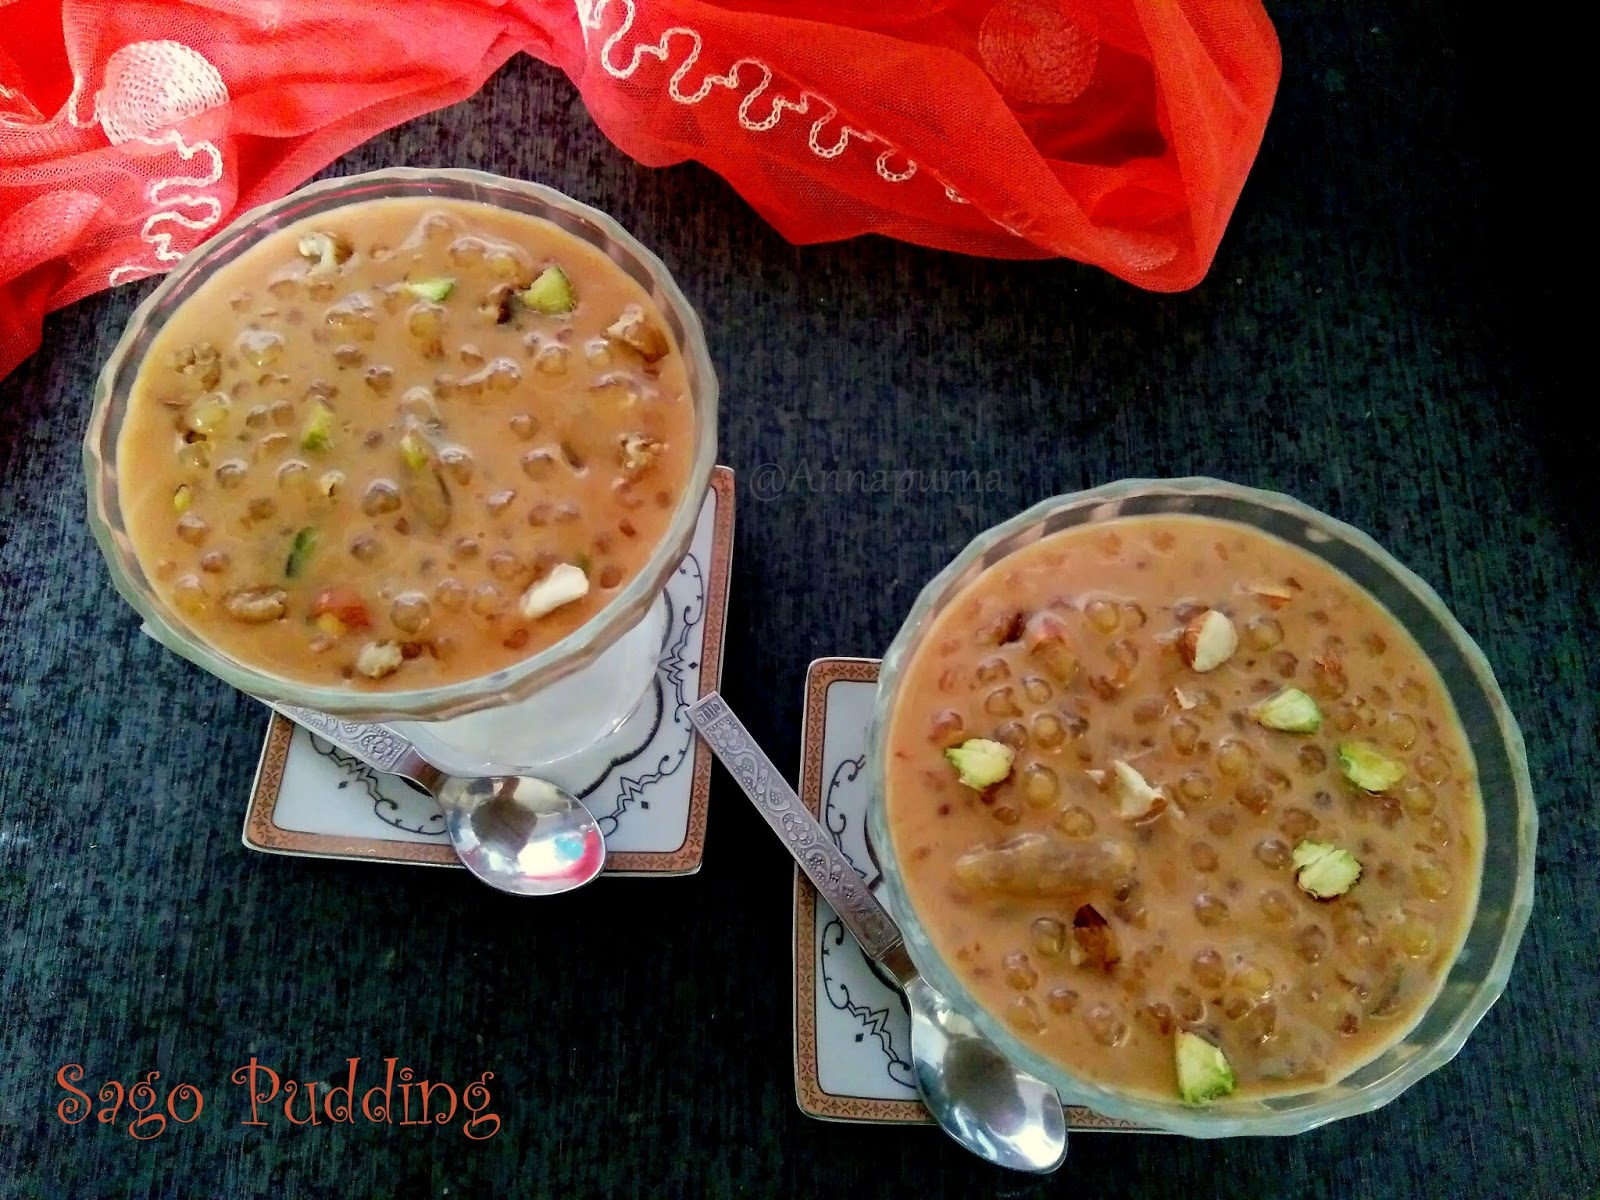 Indian food recipes indian recipes desi food desi recipes chaitra navratri an auspicious hindu festivity starts on the first day of the chaitra month first month of hindu lunar calendar falls in the month of forumfinder Choice Image